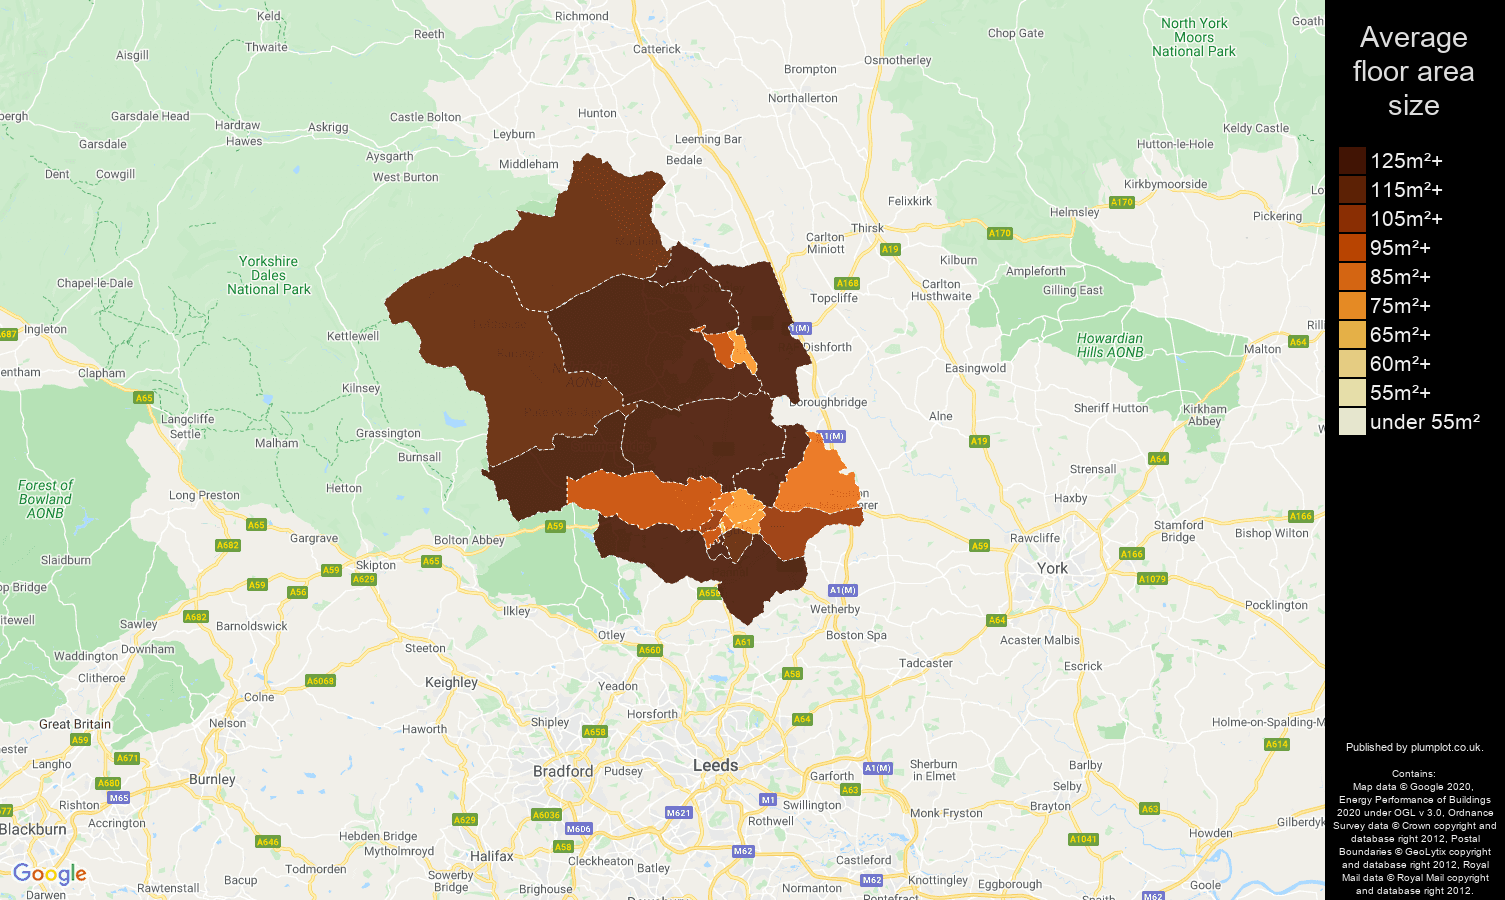 Harrogate map of average floor area size of properties